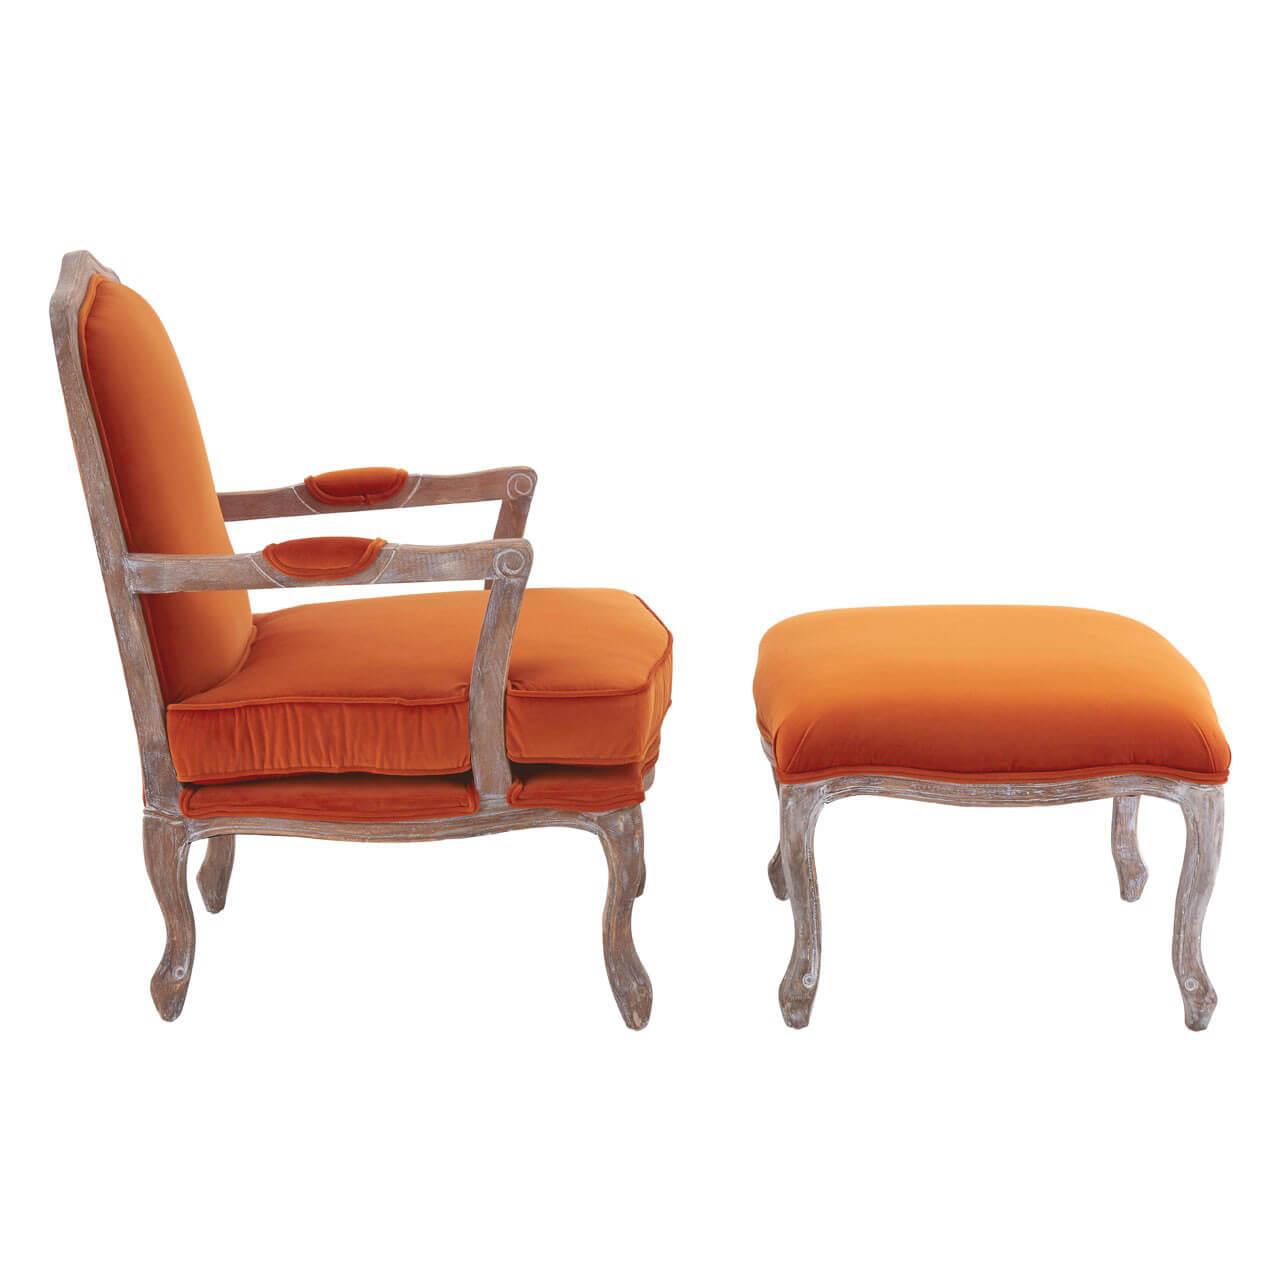 burnt orange chair uk 2013 ford explorer captains chairs baroque armchair and footstool black grey velvet fads